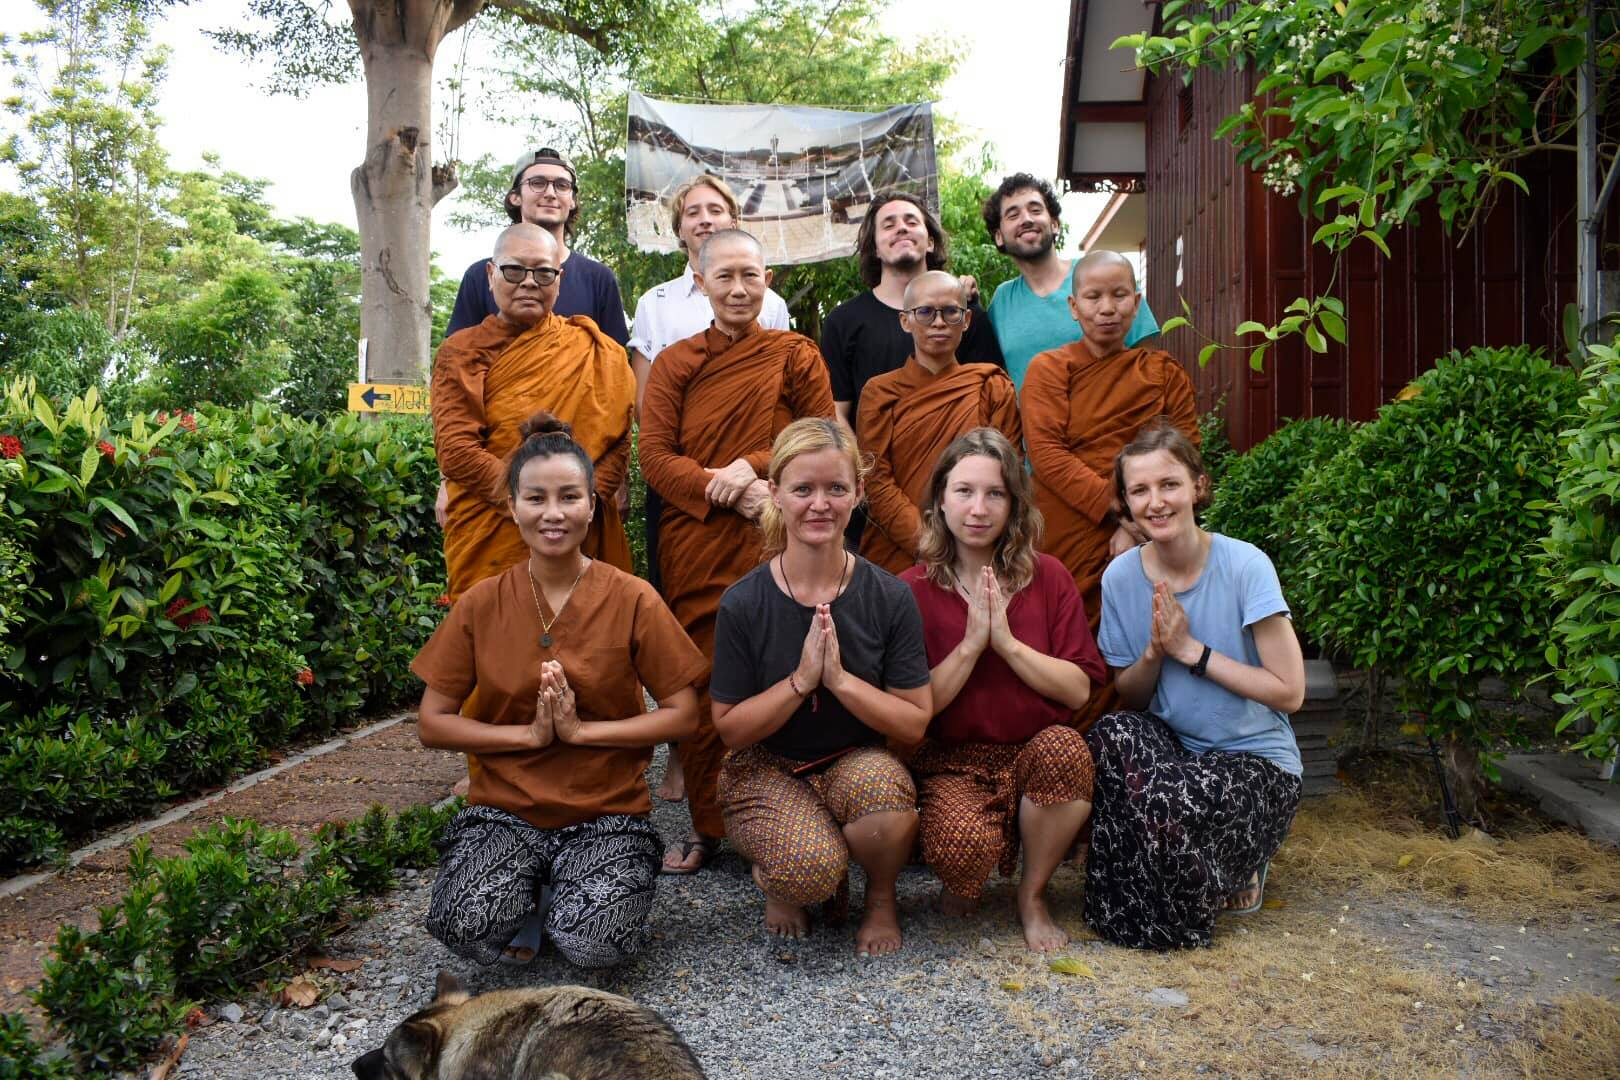 The volunteers and Bhikkhuni pose outside of the meditation center in Thailand